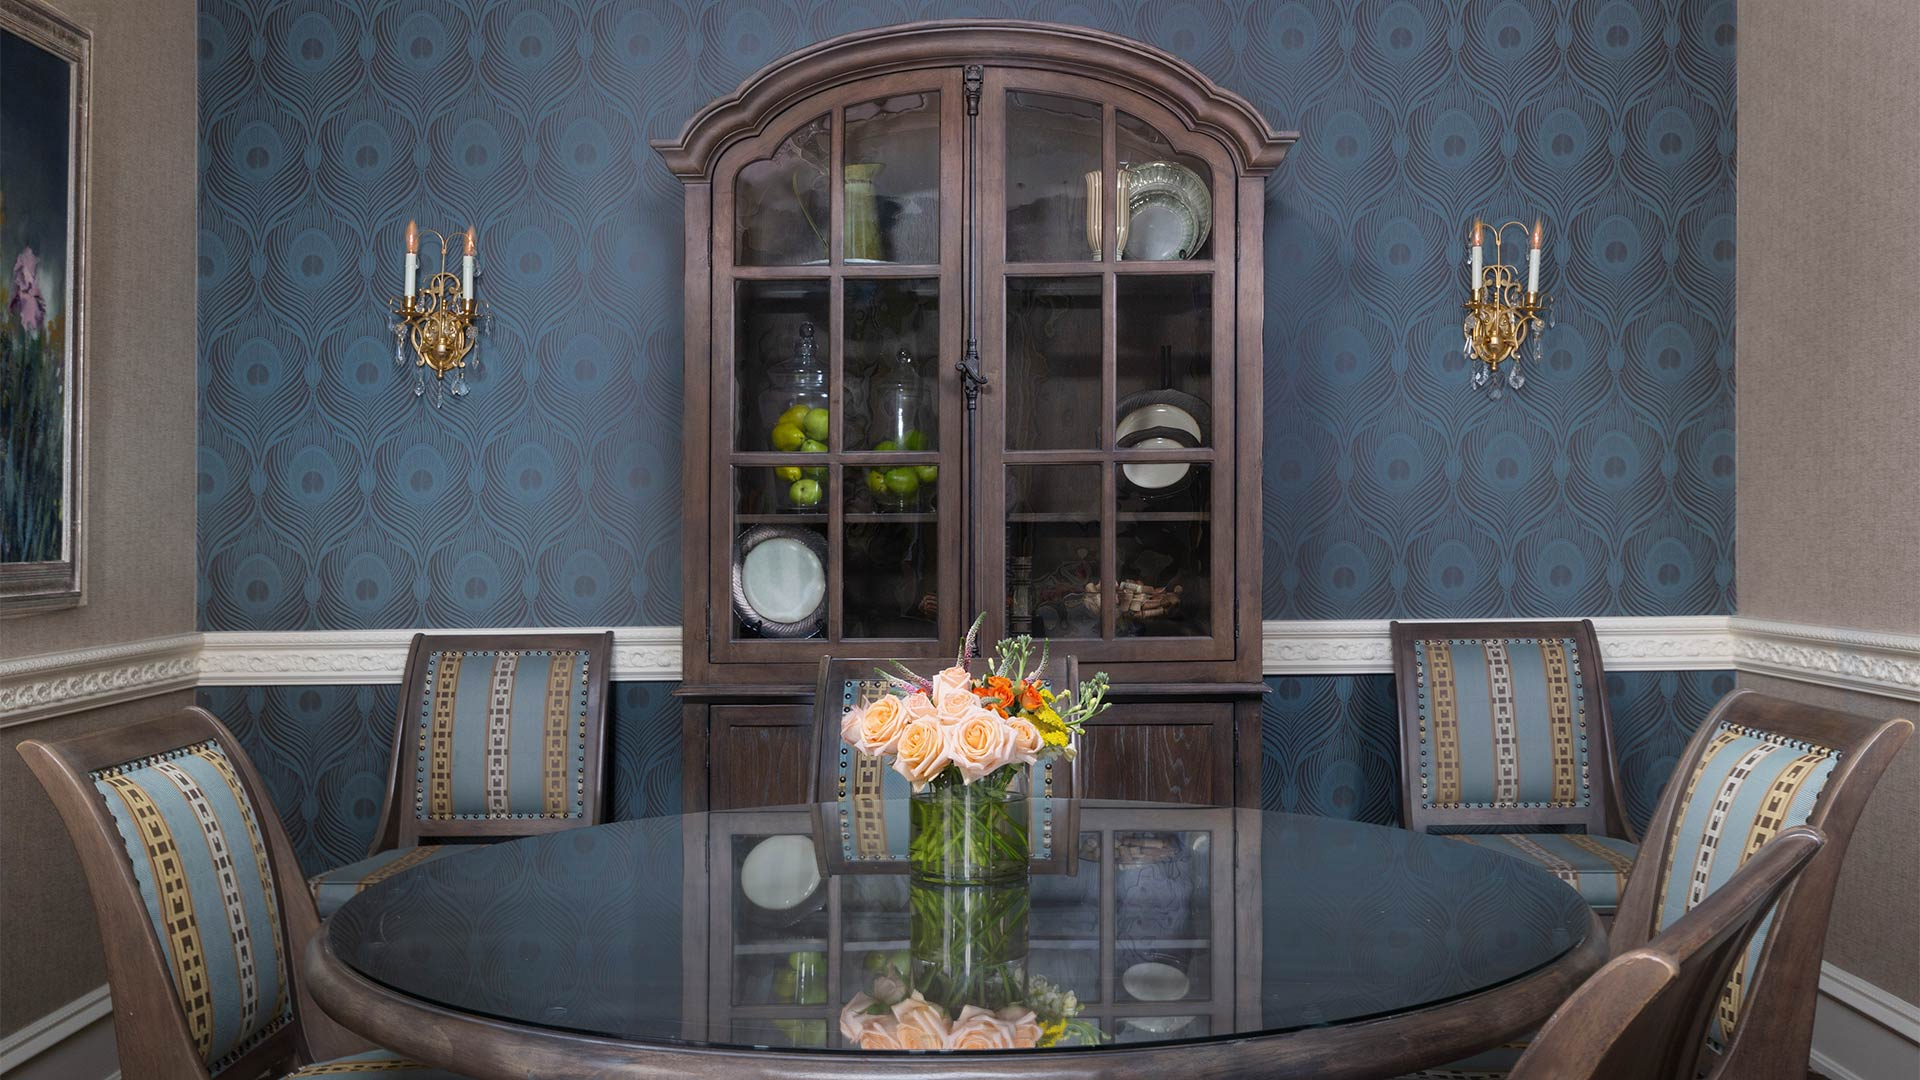 interior shot of the dining room. There is a large round table with five chairs placed around it. There is a cabinet with dish wear in it behind the table.